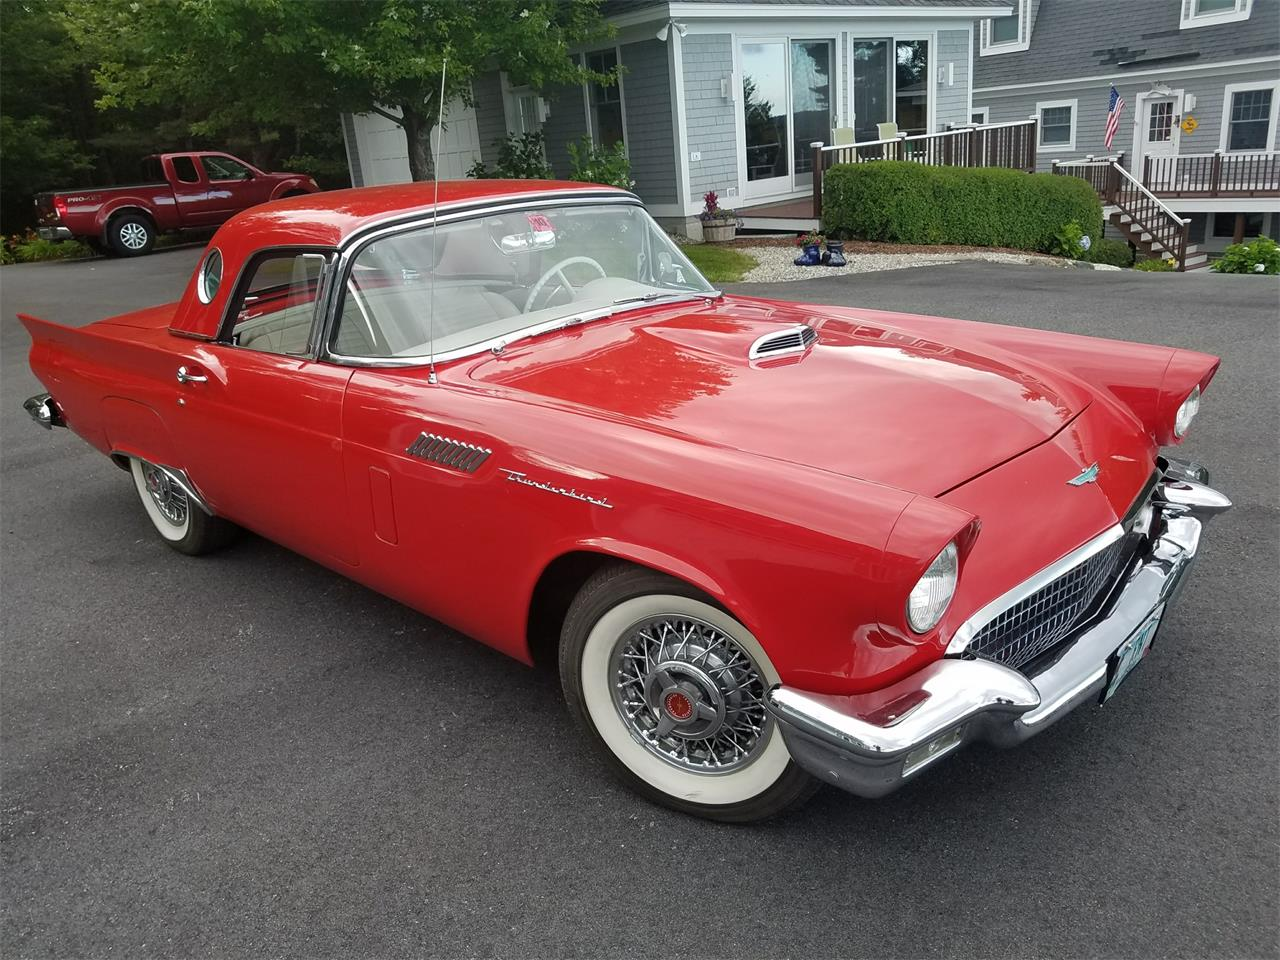 Large Picture of Classic '57 Ford Thunderbird located in Sunapee New Hampshire - $32,900.00 - LI8K